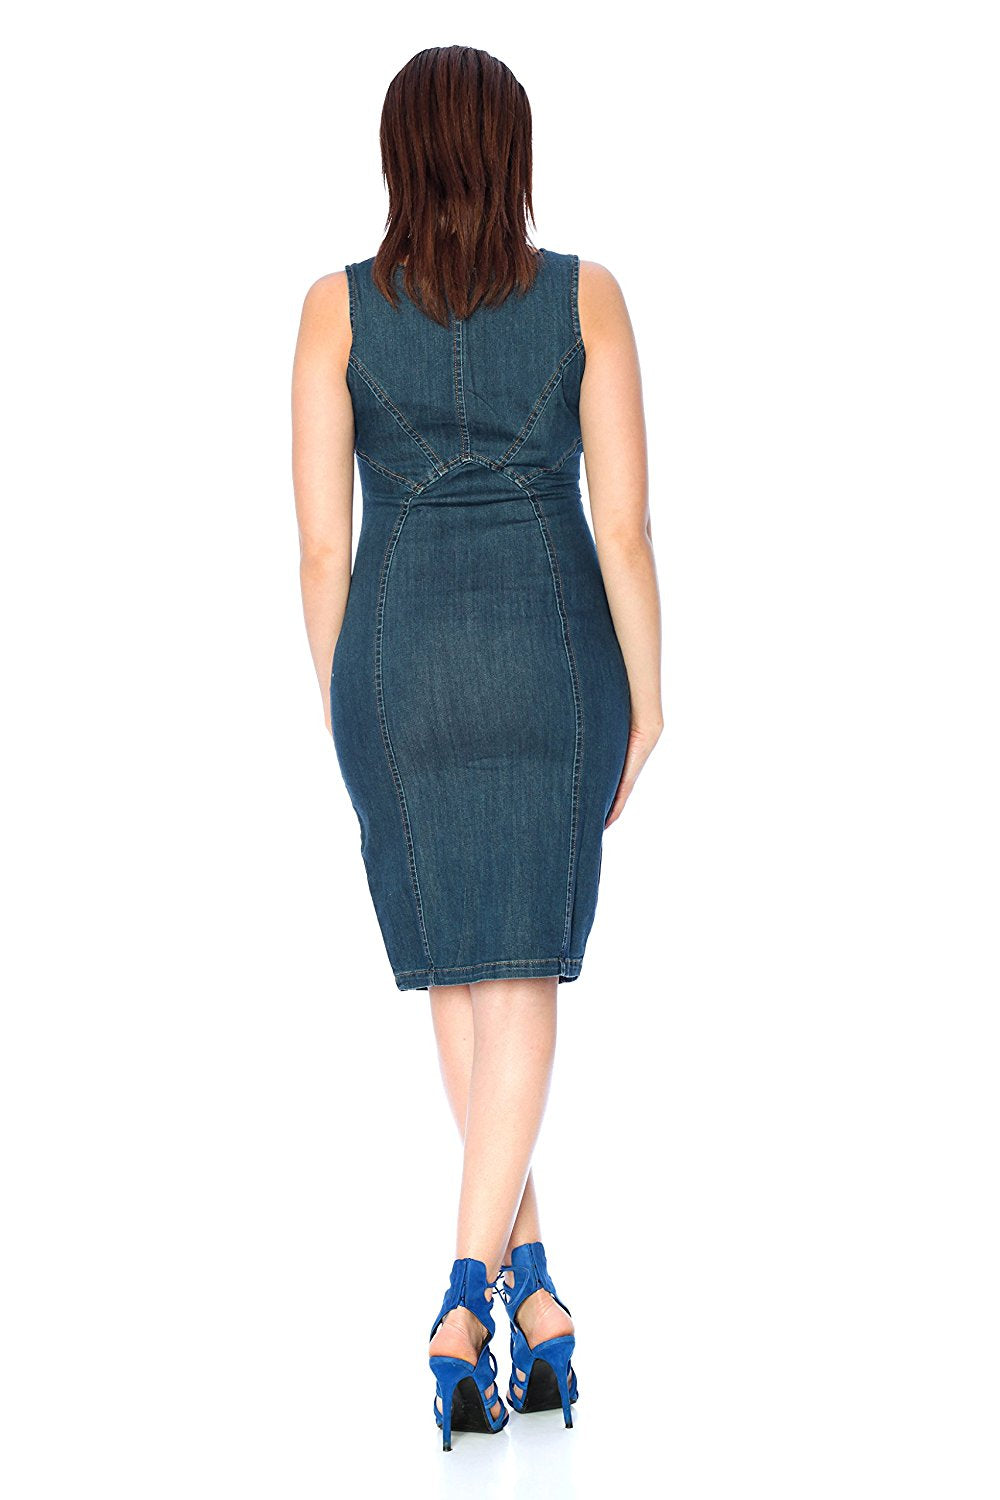 Khanomak Sleeveless Scoop Neck Misses Zip Up Denim Dress